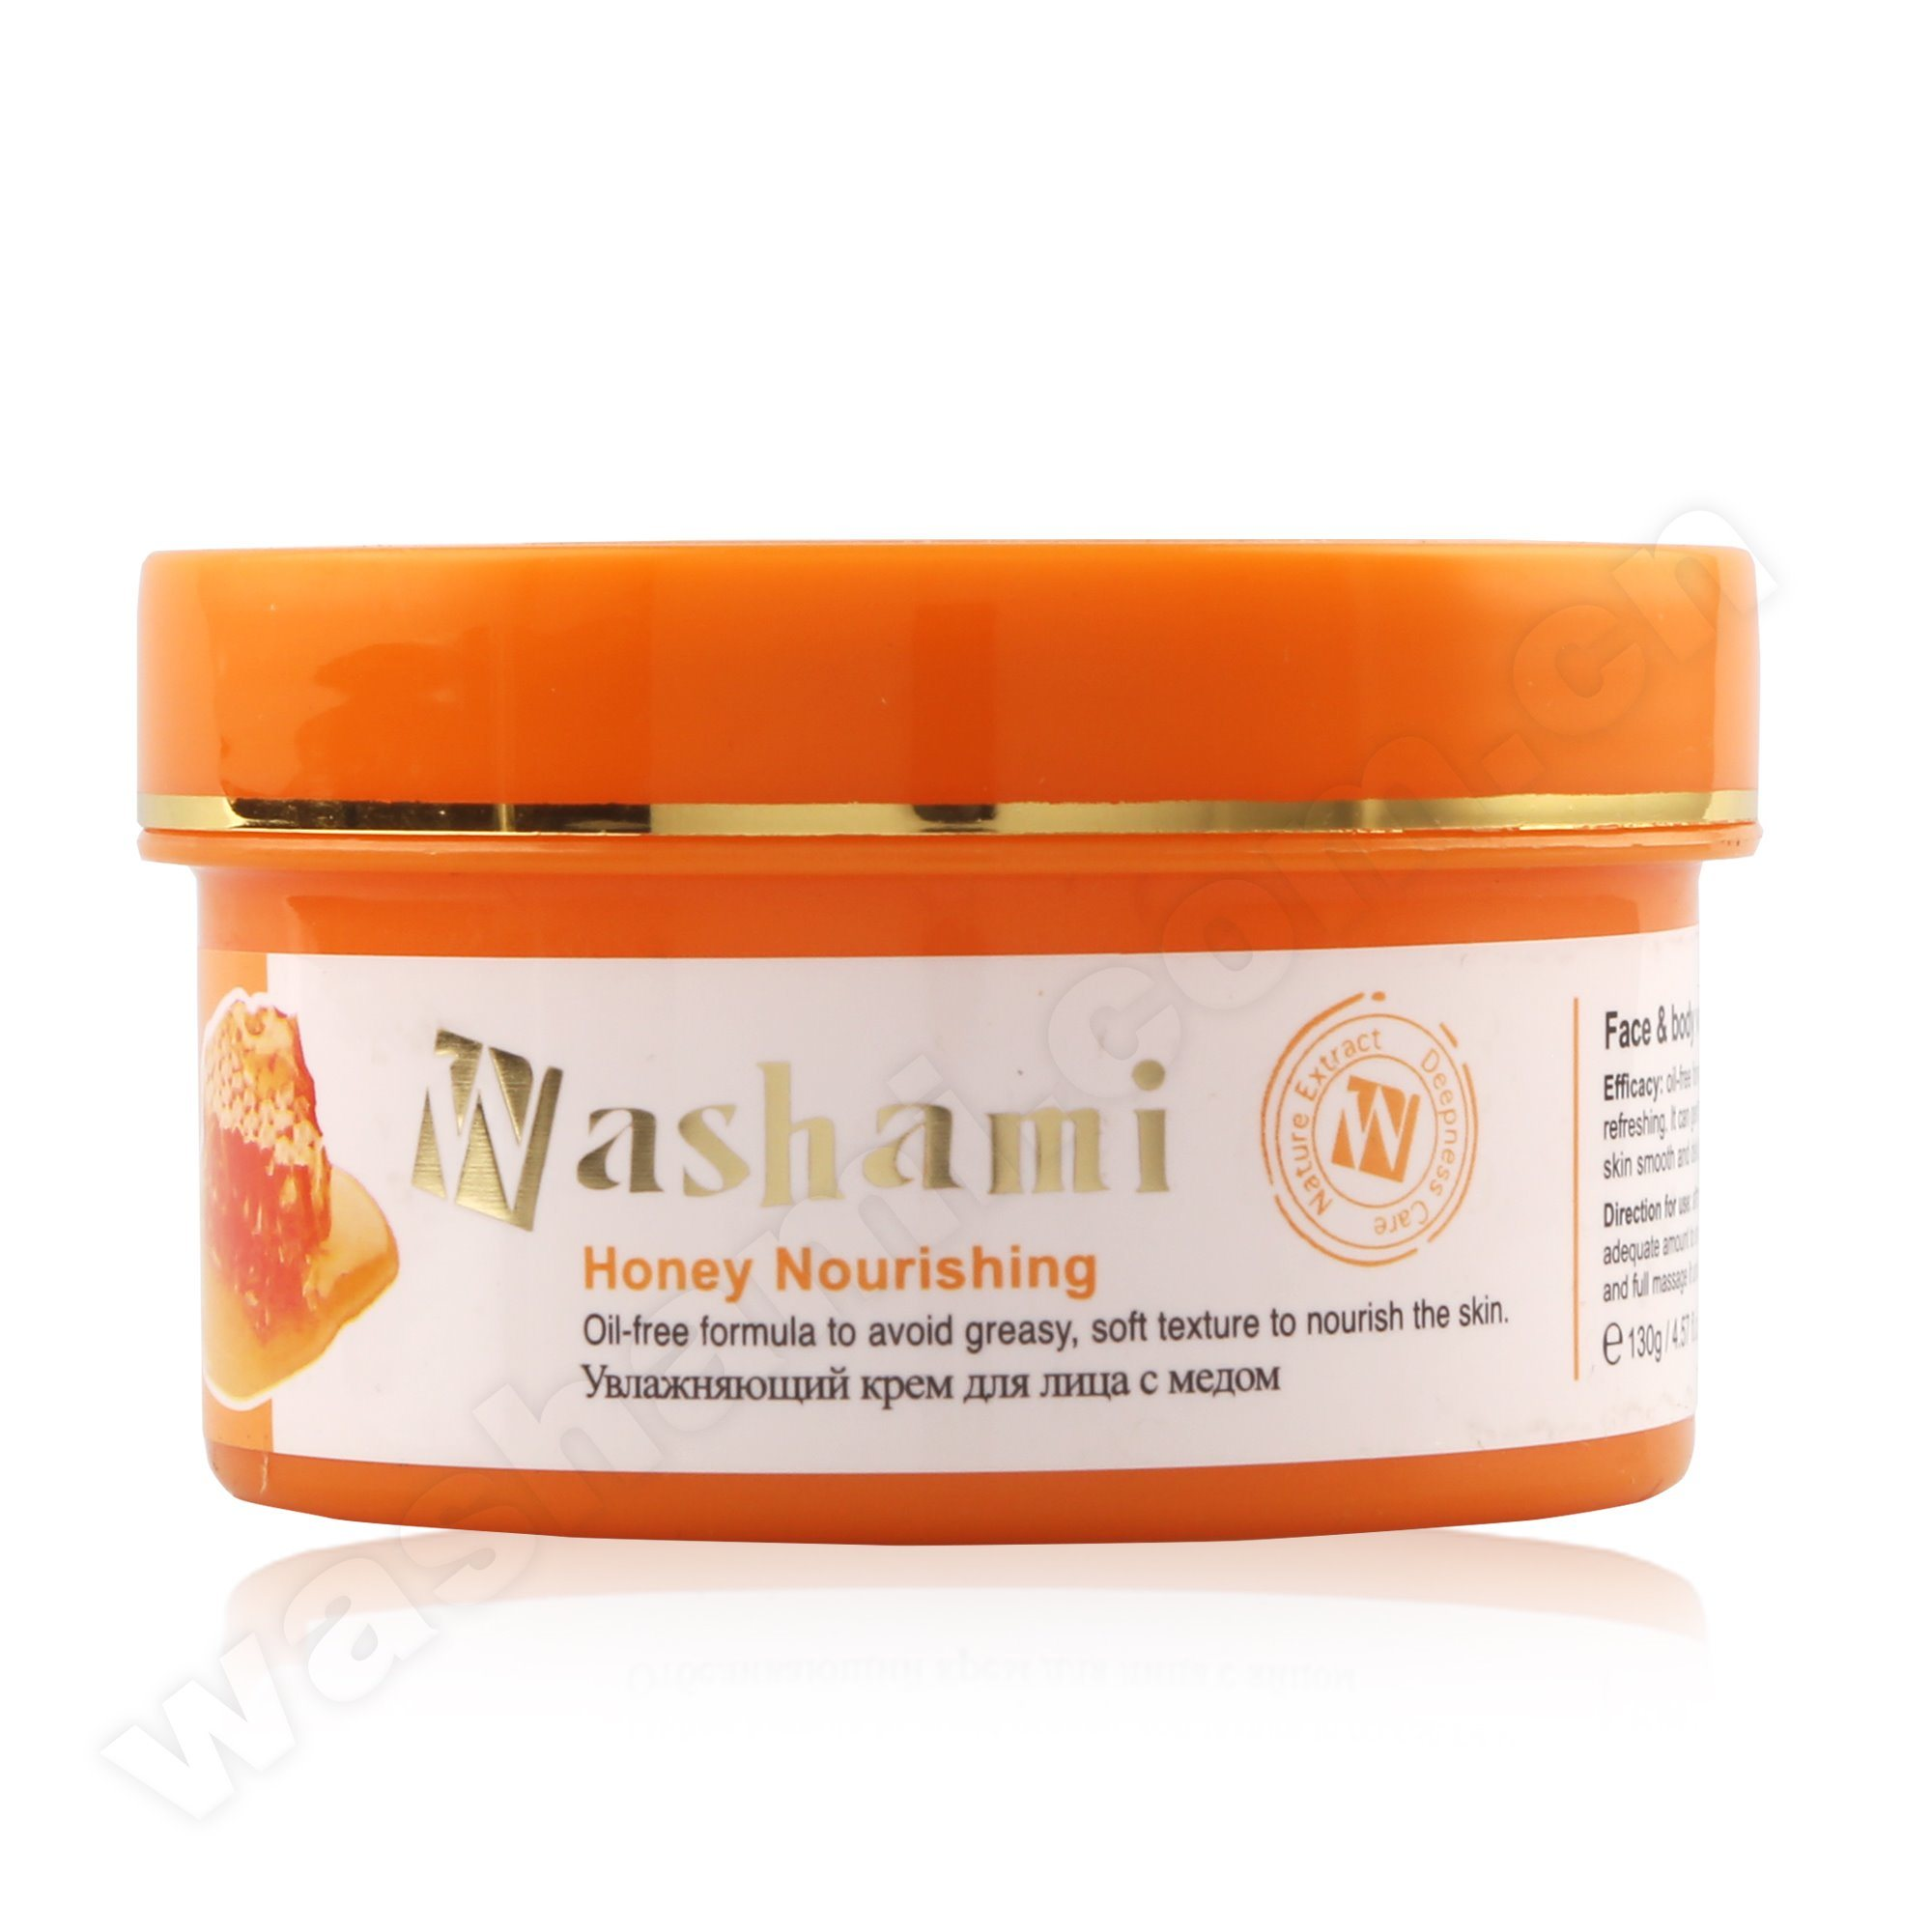 Washami Skin Lightening Face Whitening Cream pictures & photos